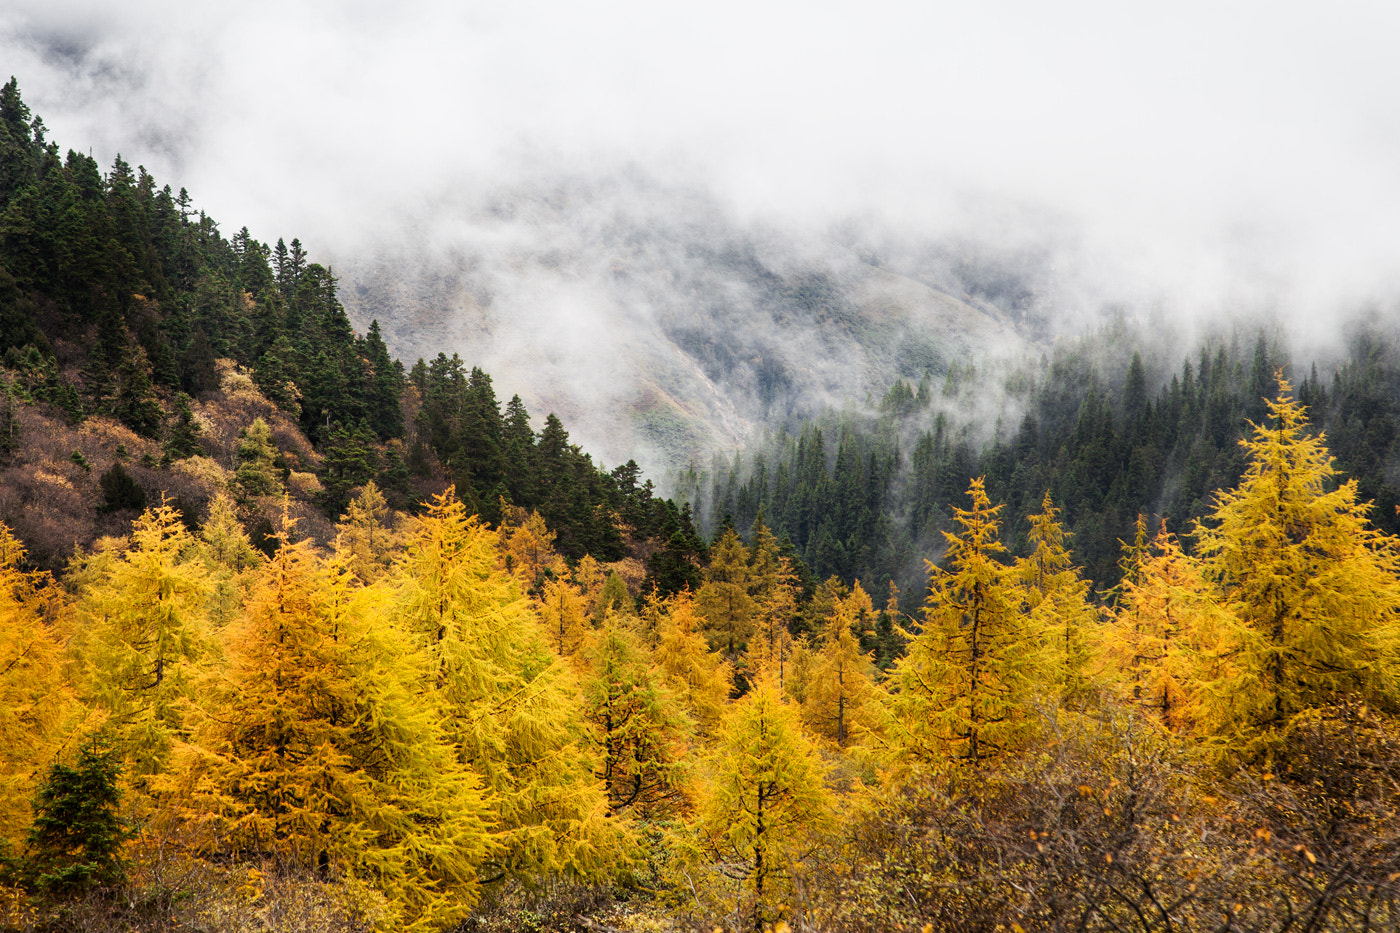 Photograph Autumn in mountains by Marina Sorokina on 500px